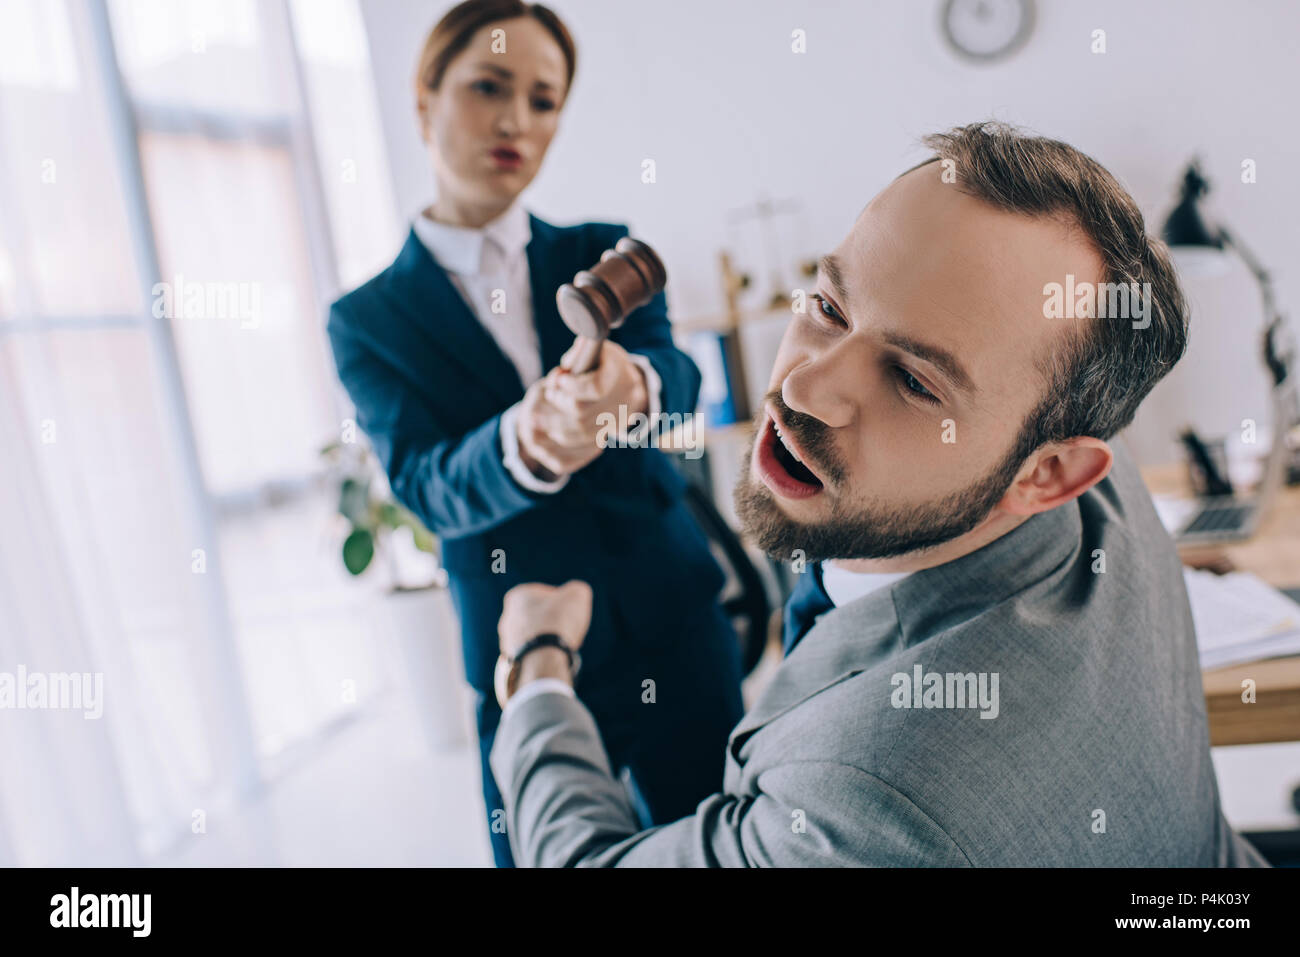 selective focus of lawyer pretending to hit colleague with gavel in hands in office - Stock Image